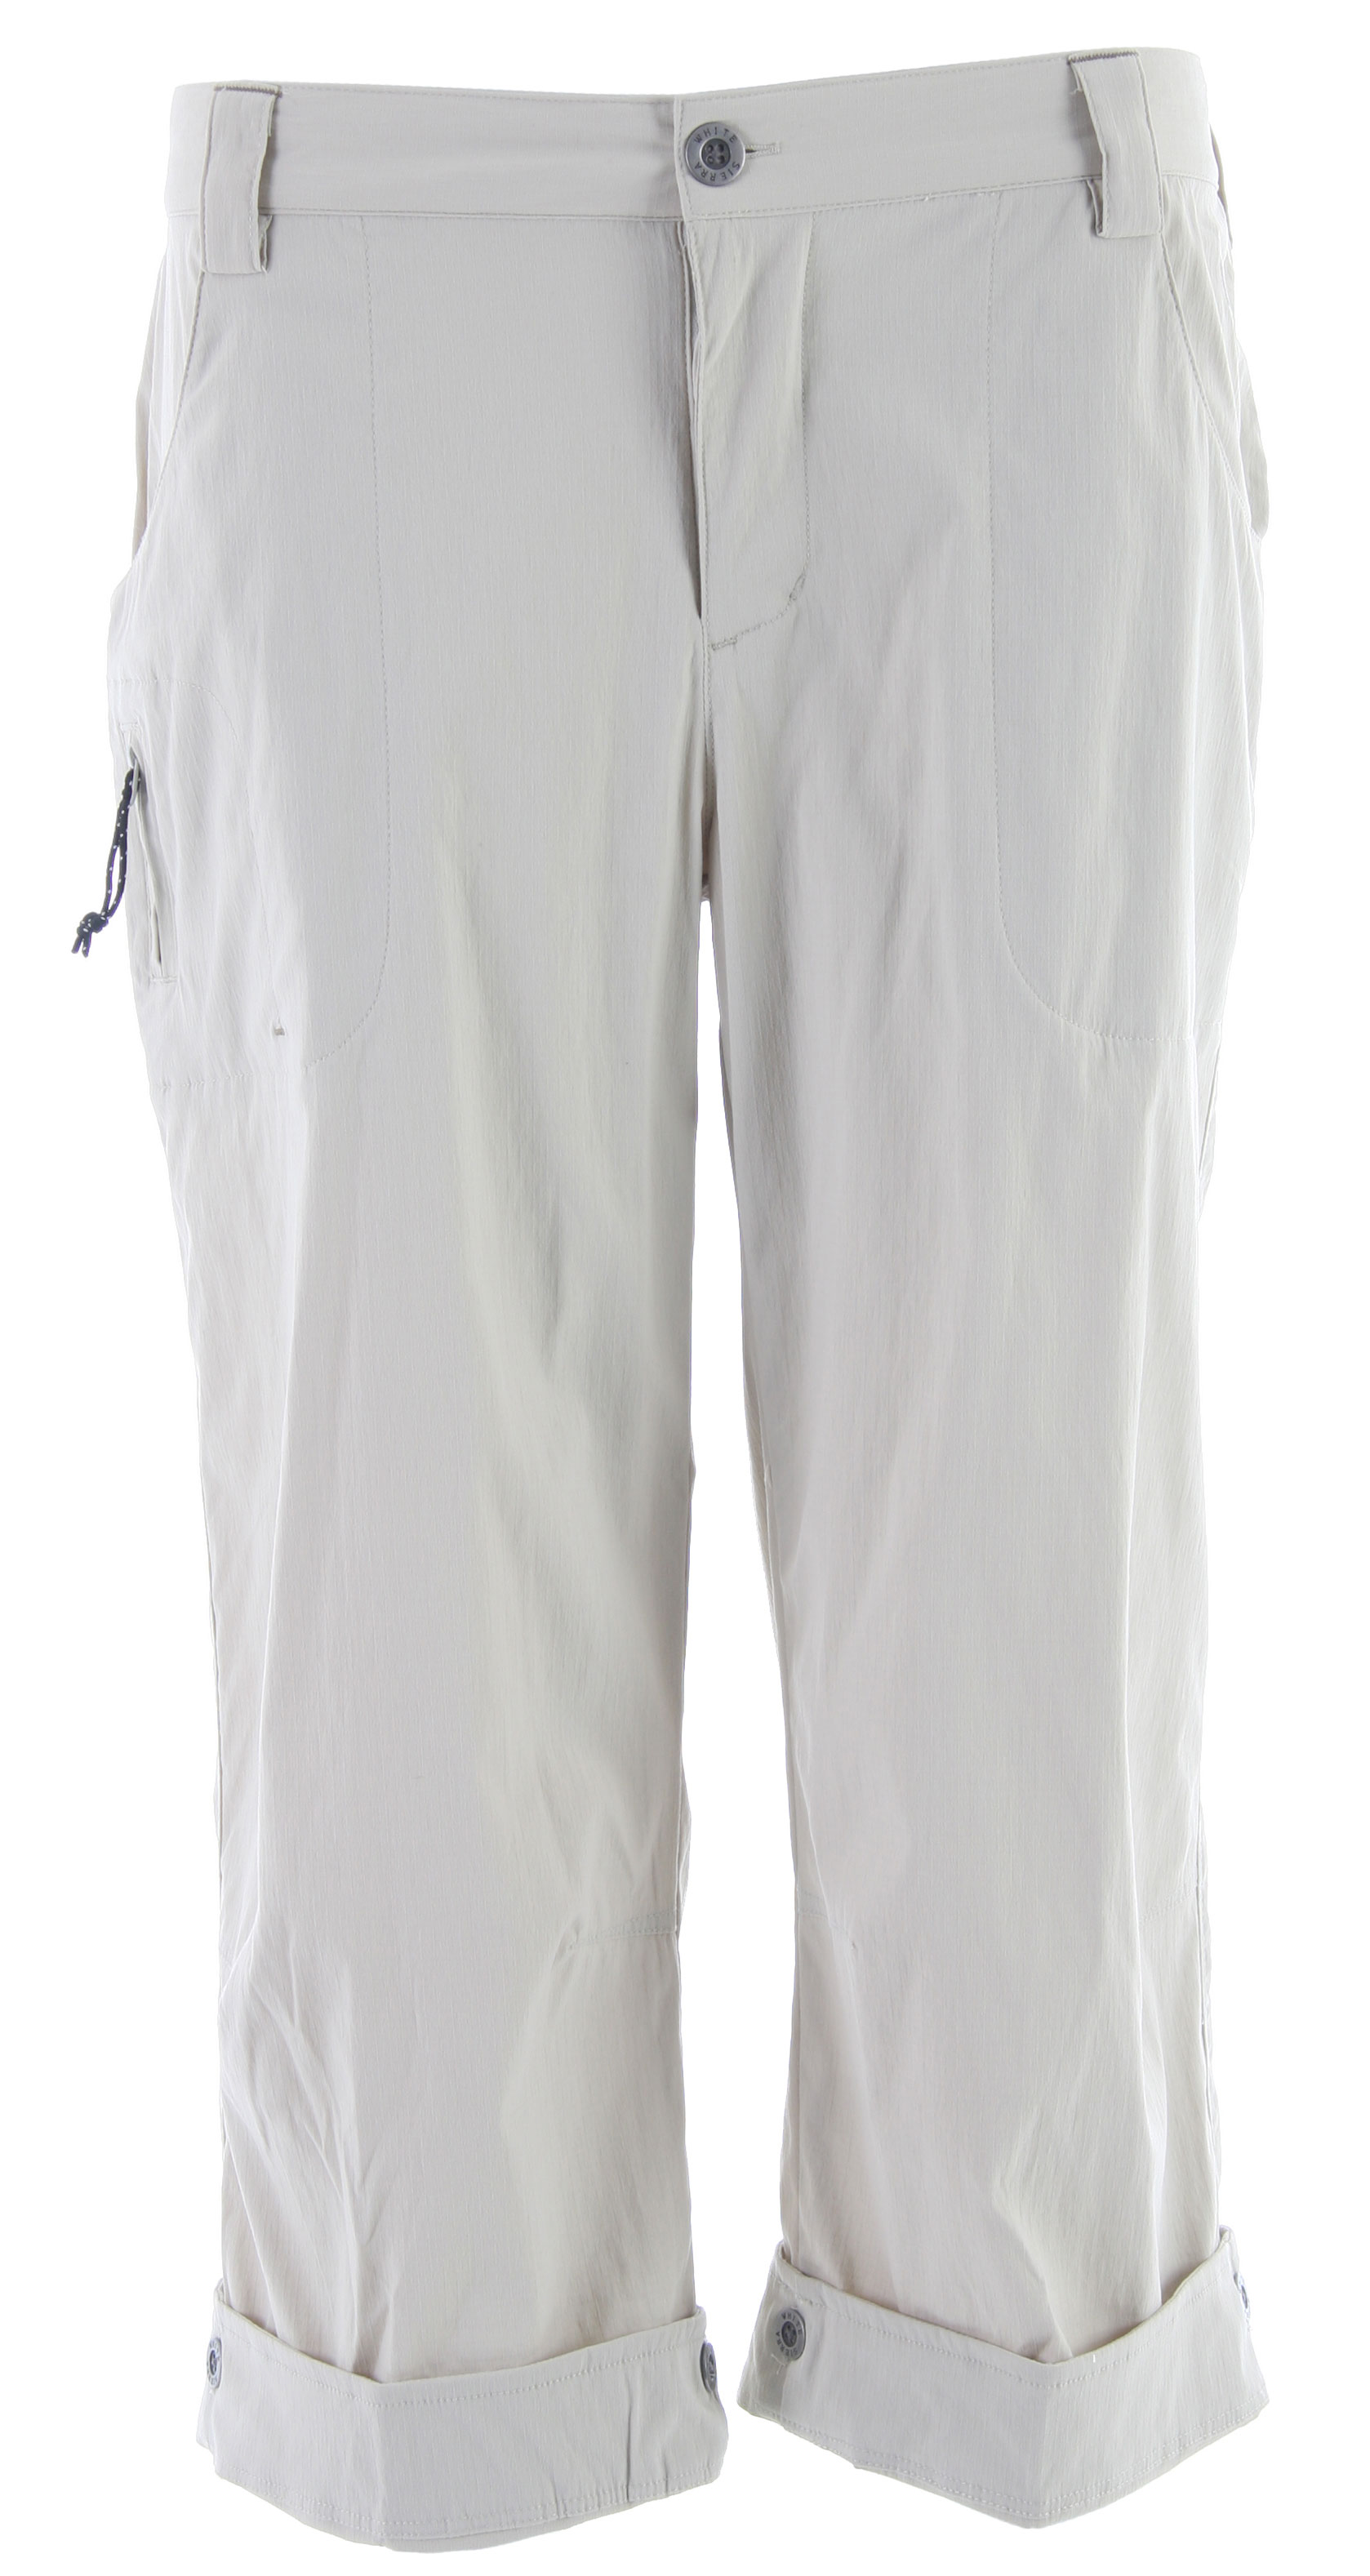 "Camp and Hike The Cache Creek Capri is our most durable hiking capri with built in UPF sun protection and quick drying fabric. Quick-drying nylon make these pants perfect for the beach, traveling, boating, or fishing.Key Features of the White Sierra Cache Creek Capri Pants:  94% nylon 6% elastane rip stop woven  Sun protection fabric  Comfort fit side elastic  Zip secure thigh pocket  Inseam: 22"" roll up to 20"" - $20.95"